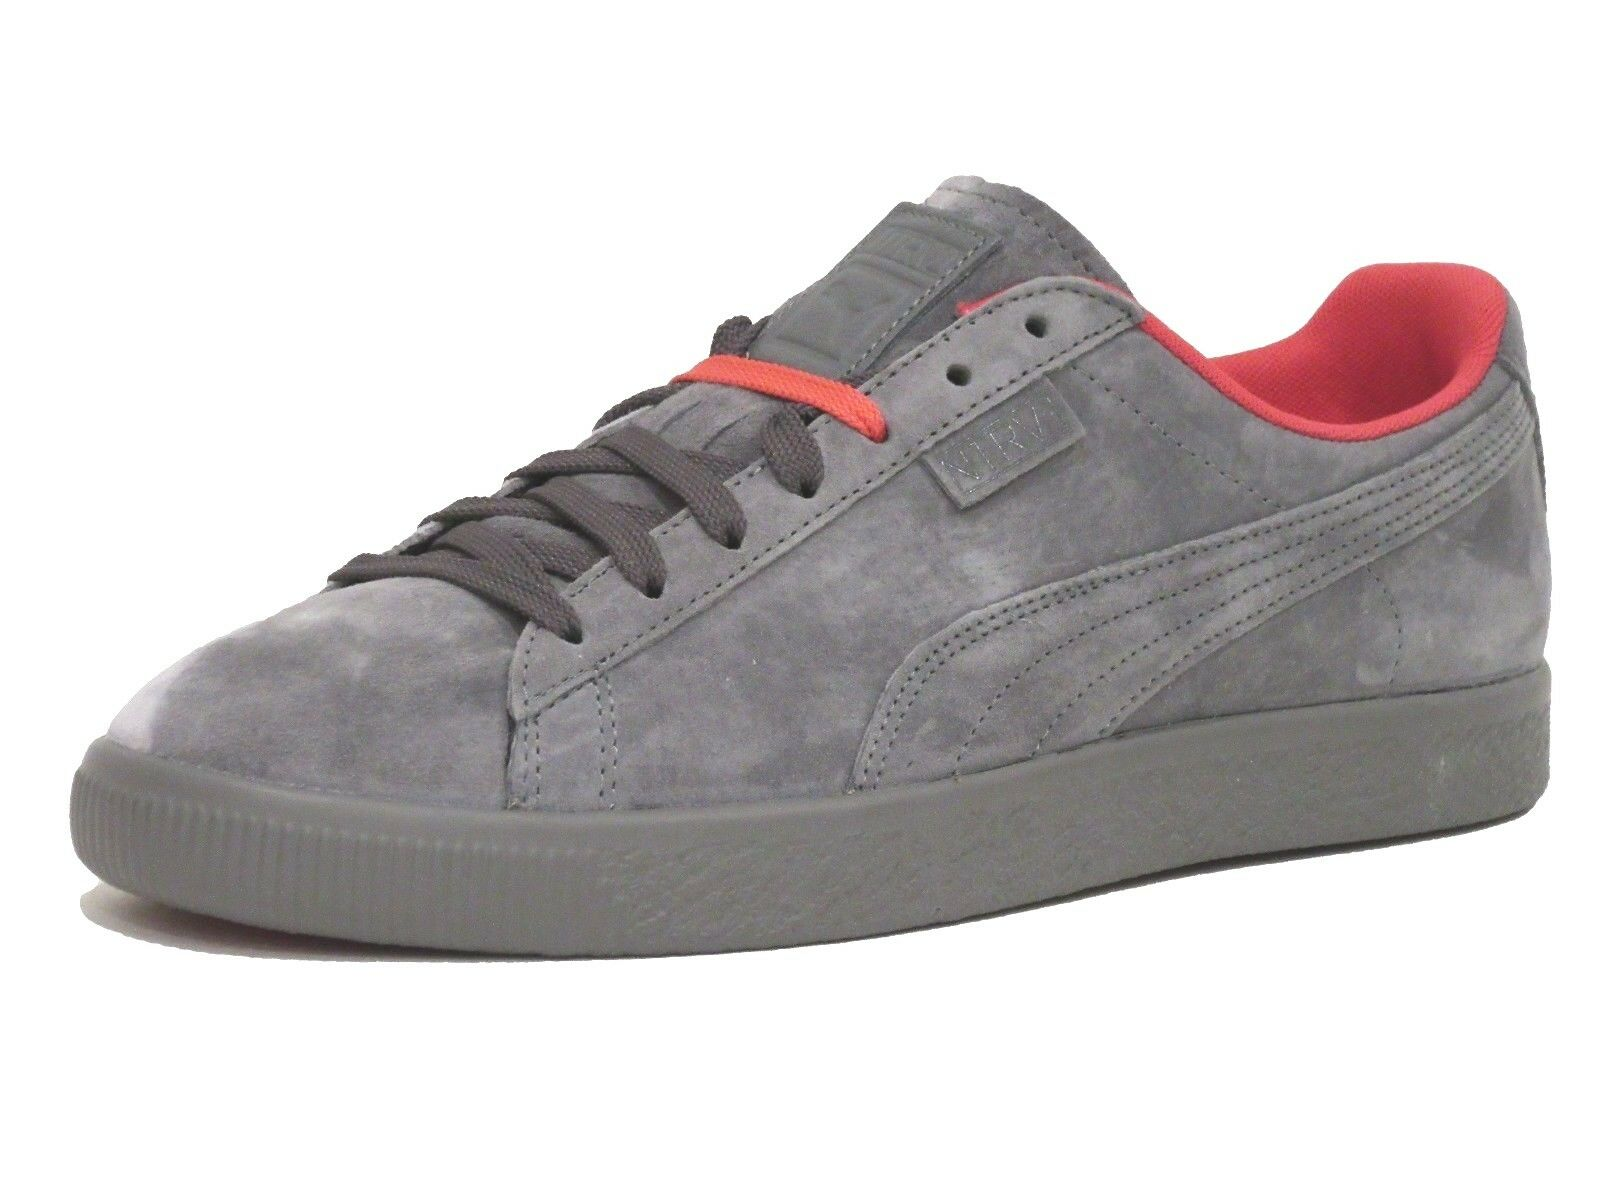 Puma Homme X Staple Clyde  Suede Fashion Sneaker